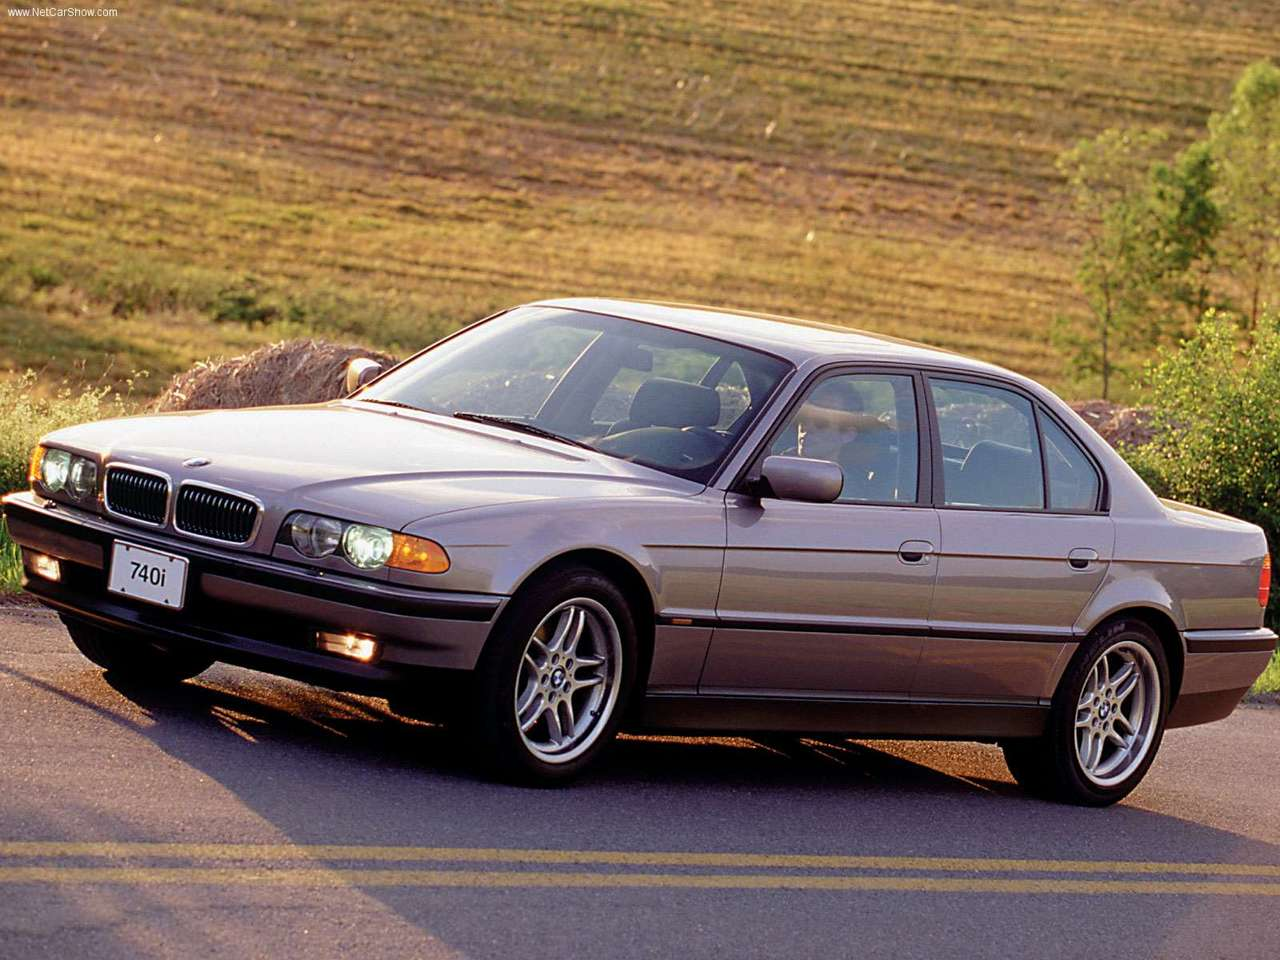 hight resolution of 2000 bmw 740i the e38 generation 1995 2001 had a five speed automatic or manual transmission the engine variants in europe were 725tds 728i 730i